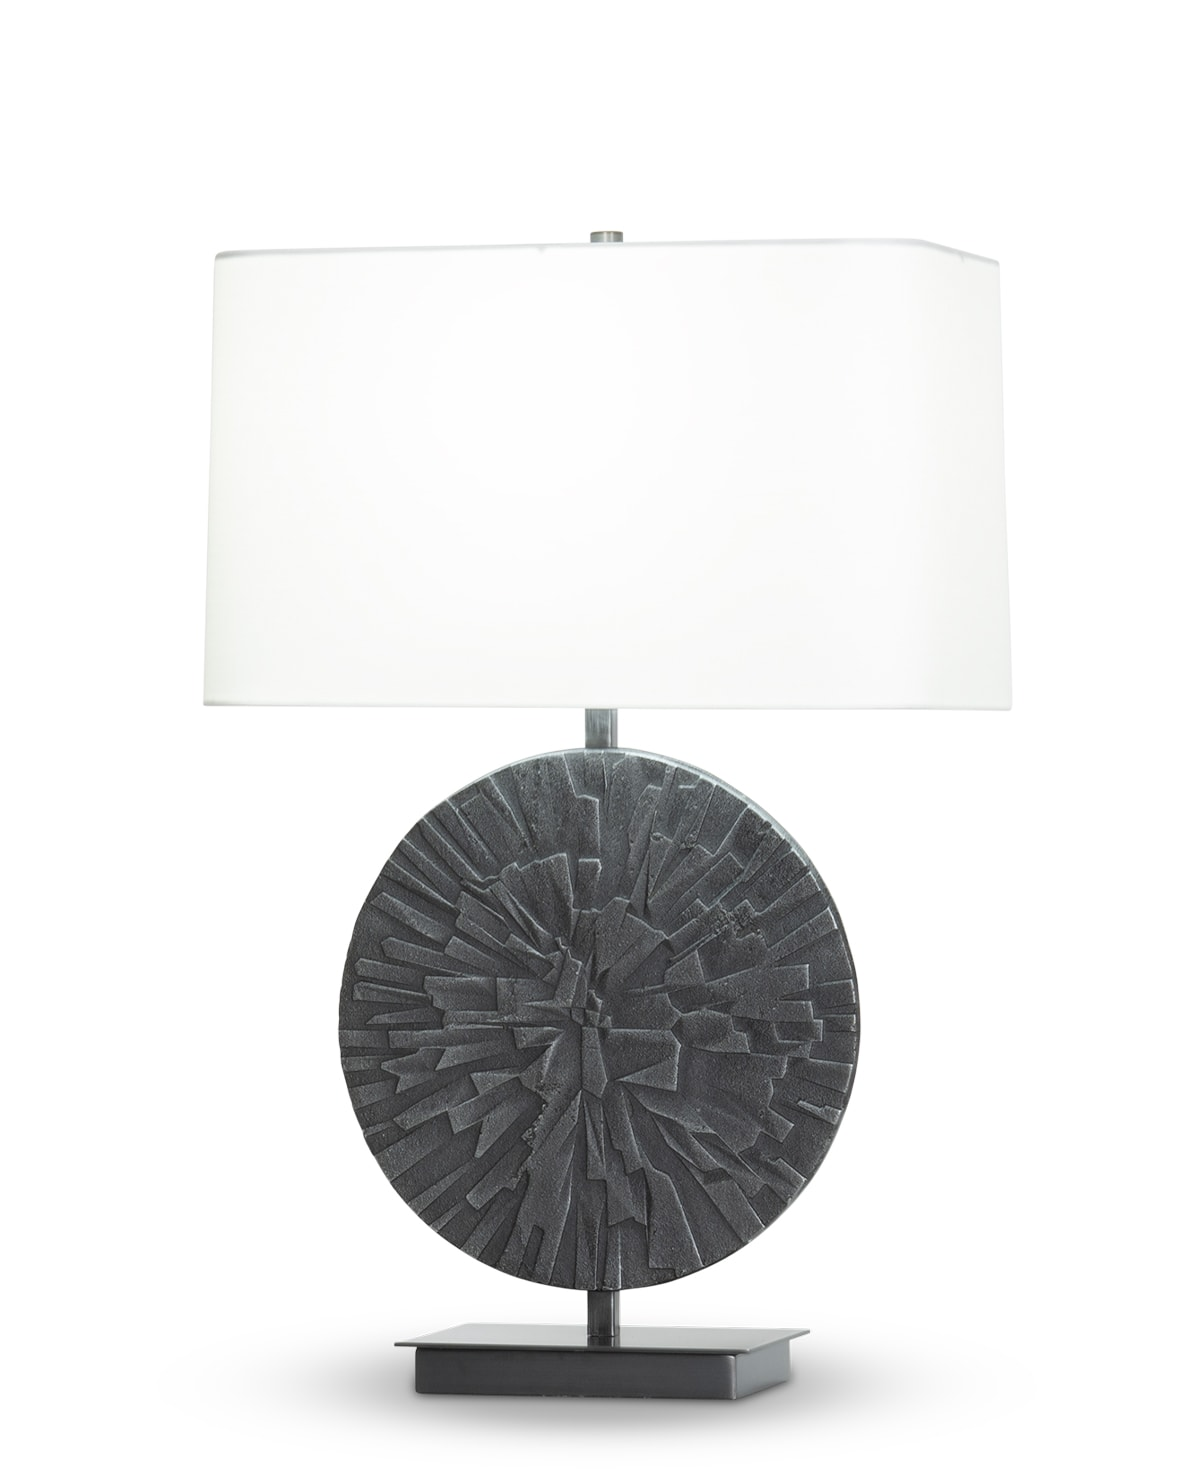 FlowDecor Sadie Table Lamp in metal with antique black finish and off-white cotton rounded rectangle shade (# 4442)